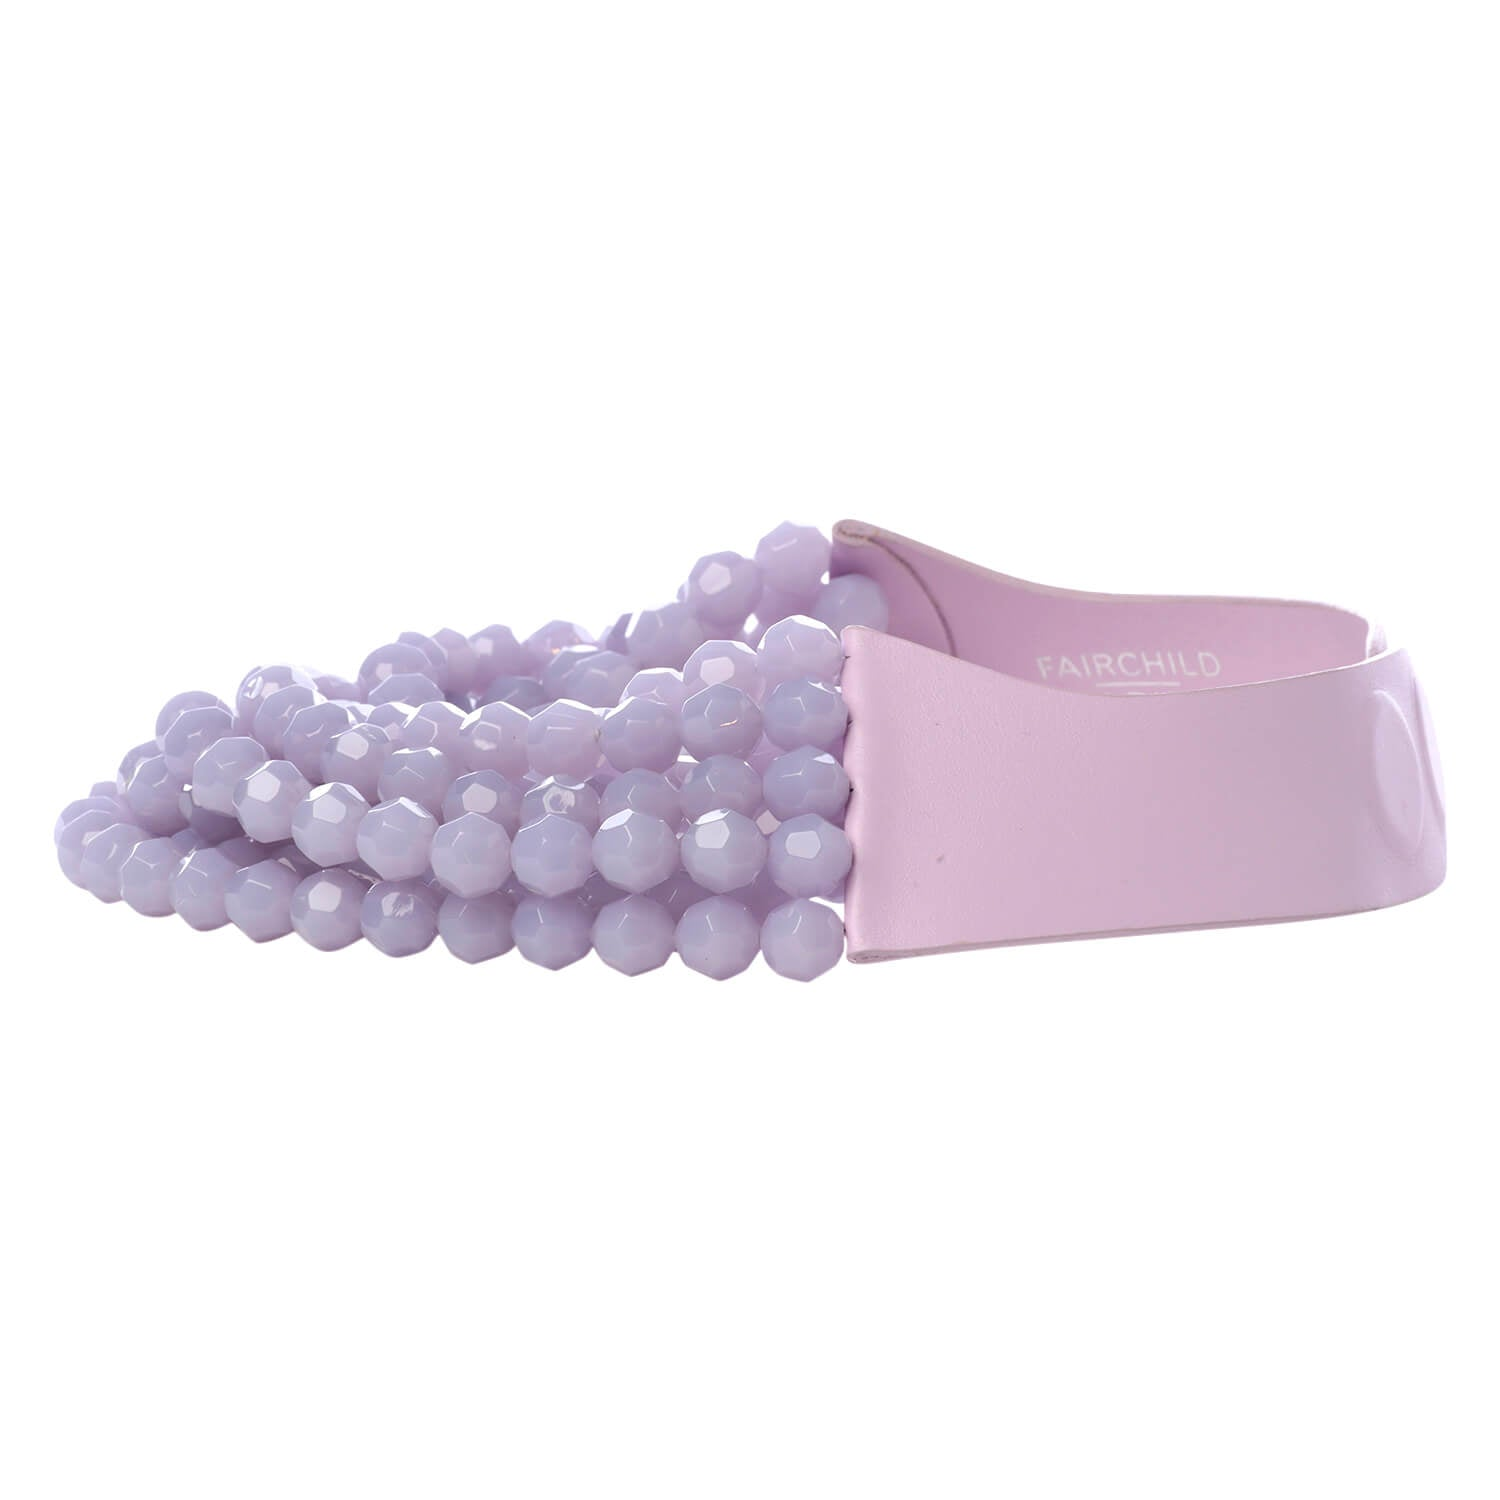 Soft Lilac - Fairchild Baldwin - Handmade in Italy